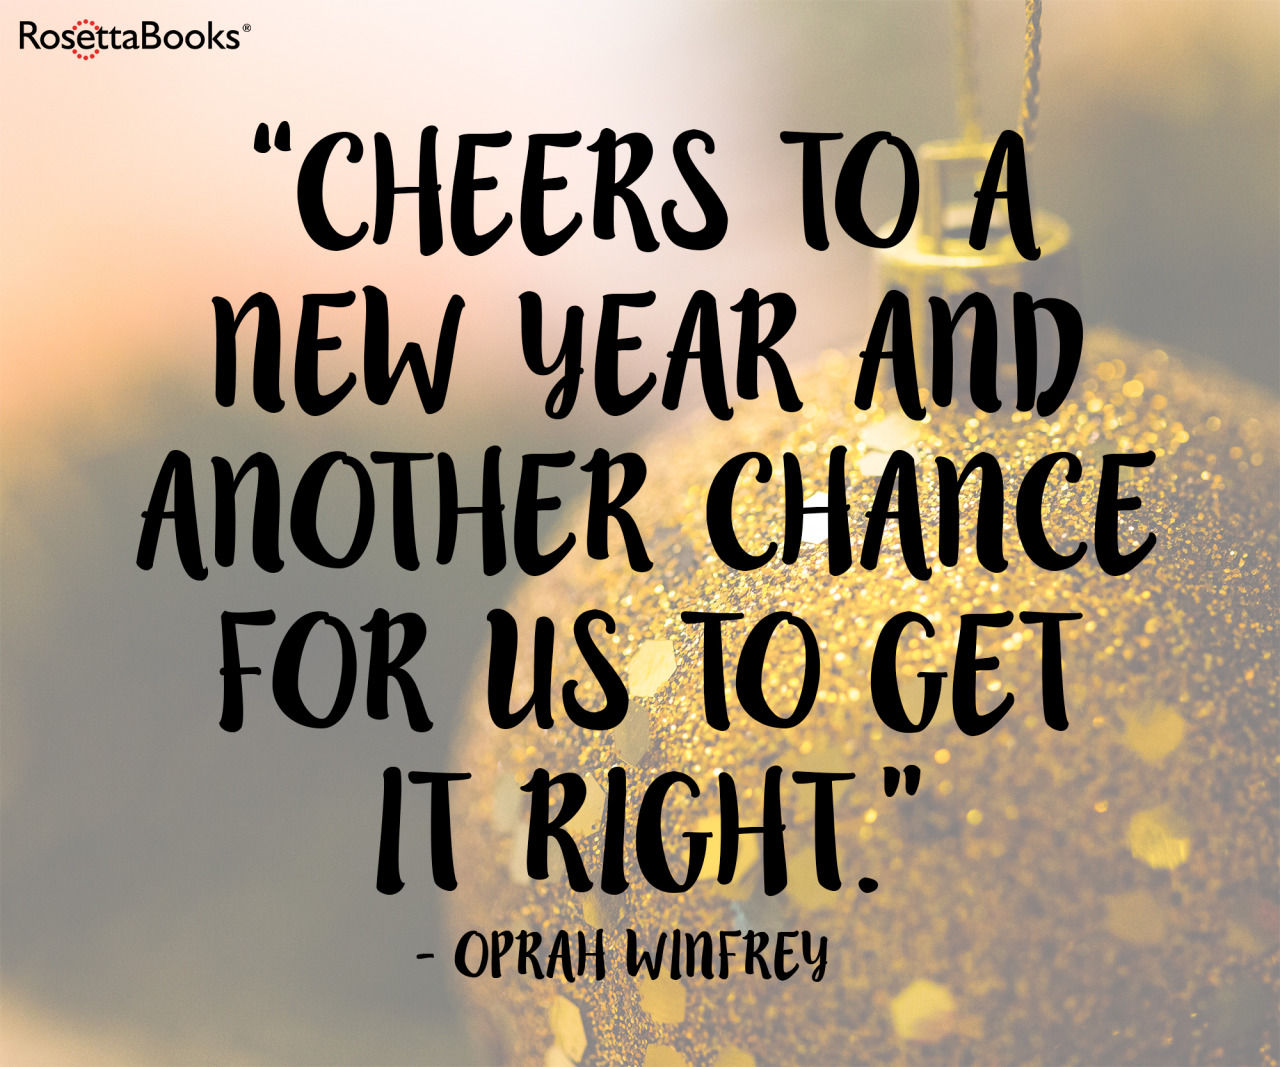 New Year New Things Quotes: Cheers To A New Year And Another Chance To Make Things